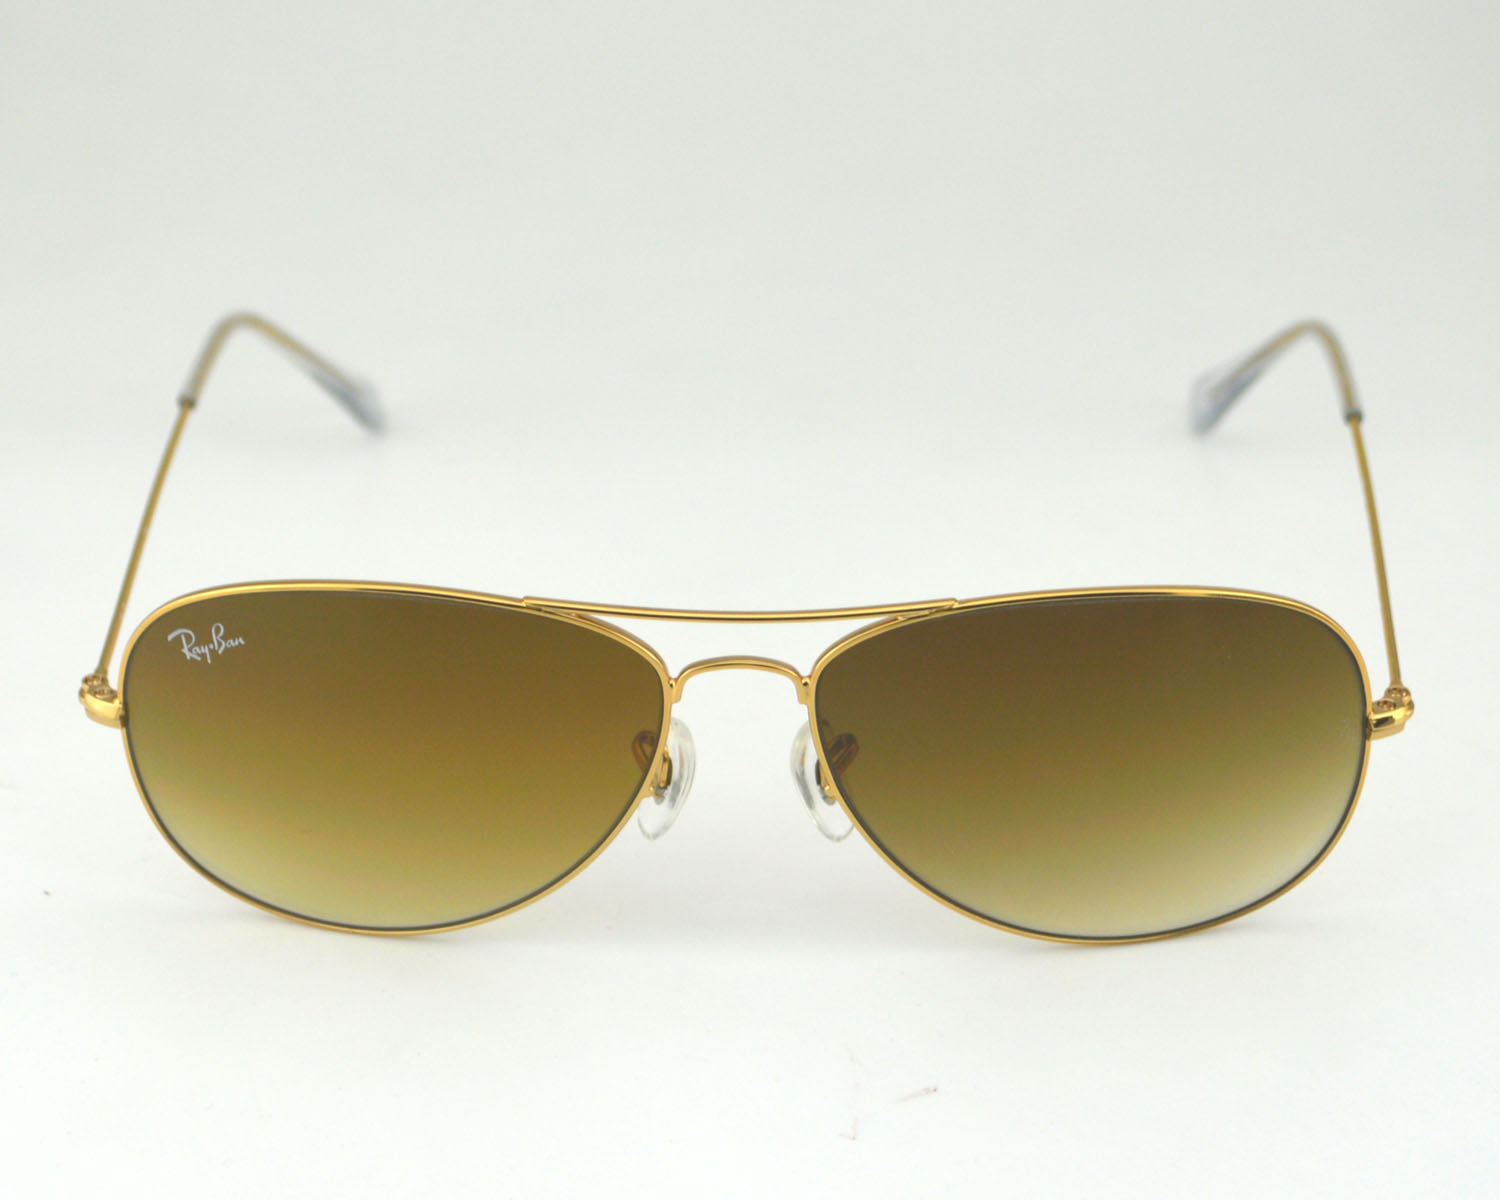 Ray Ban RB3362 Cockpit 001 51 Gold Frame  Light brown Gradient Glass Lens  Male Sunglasses 59mm 8bc8380f75